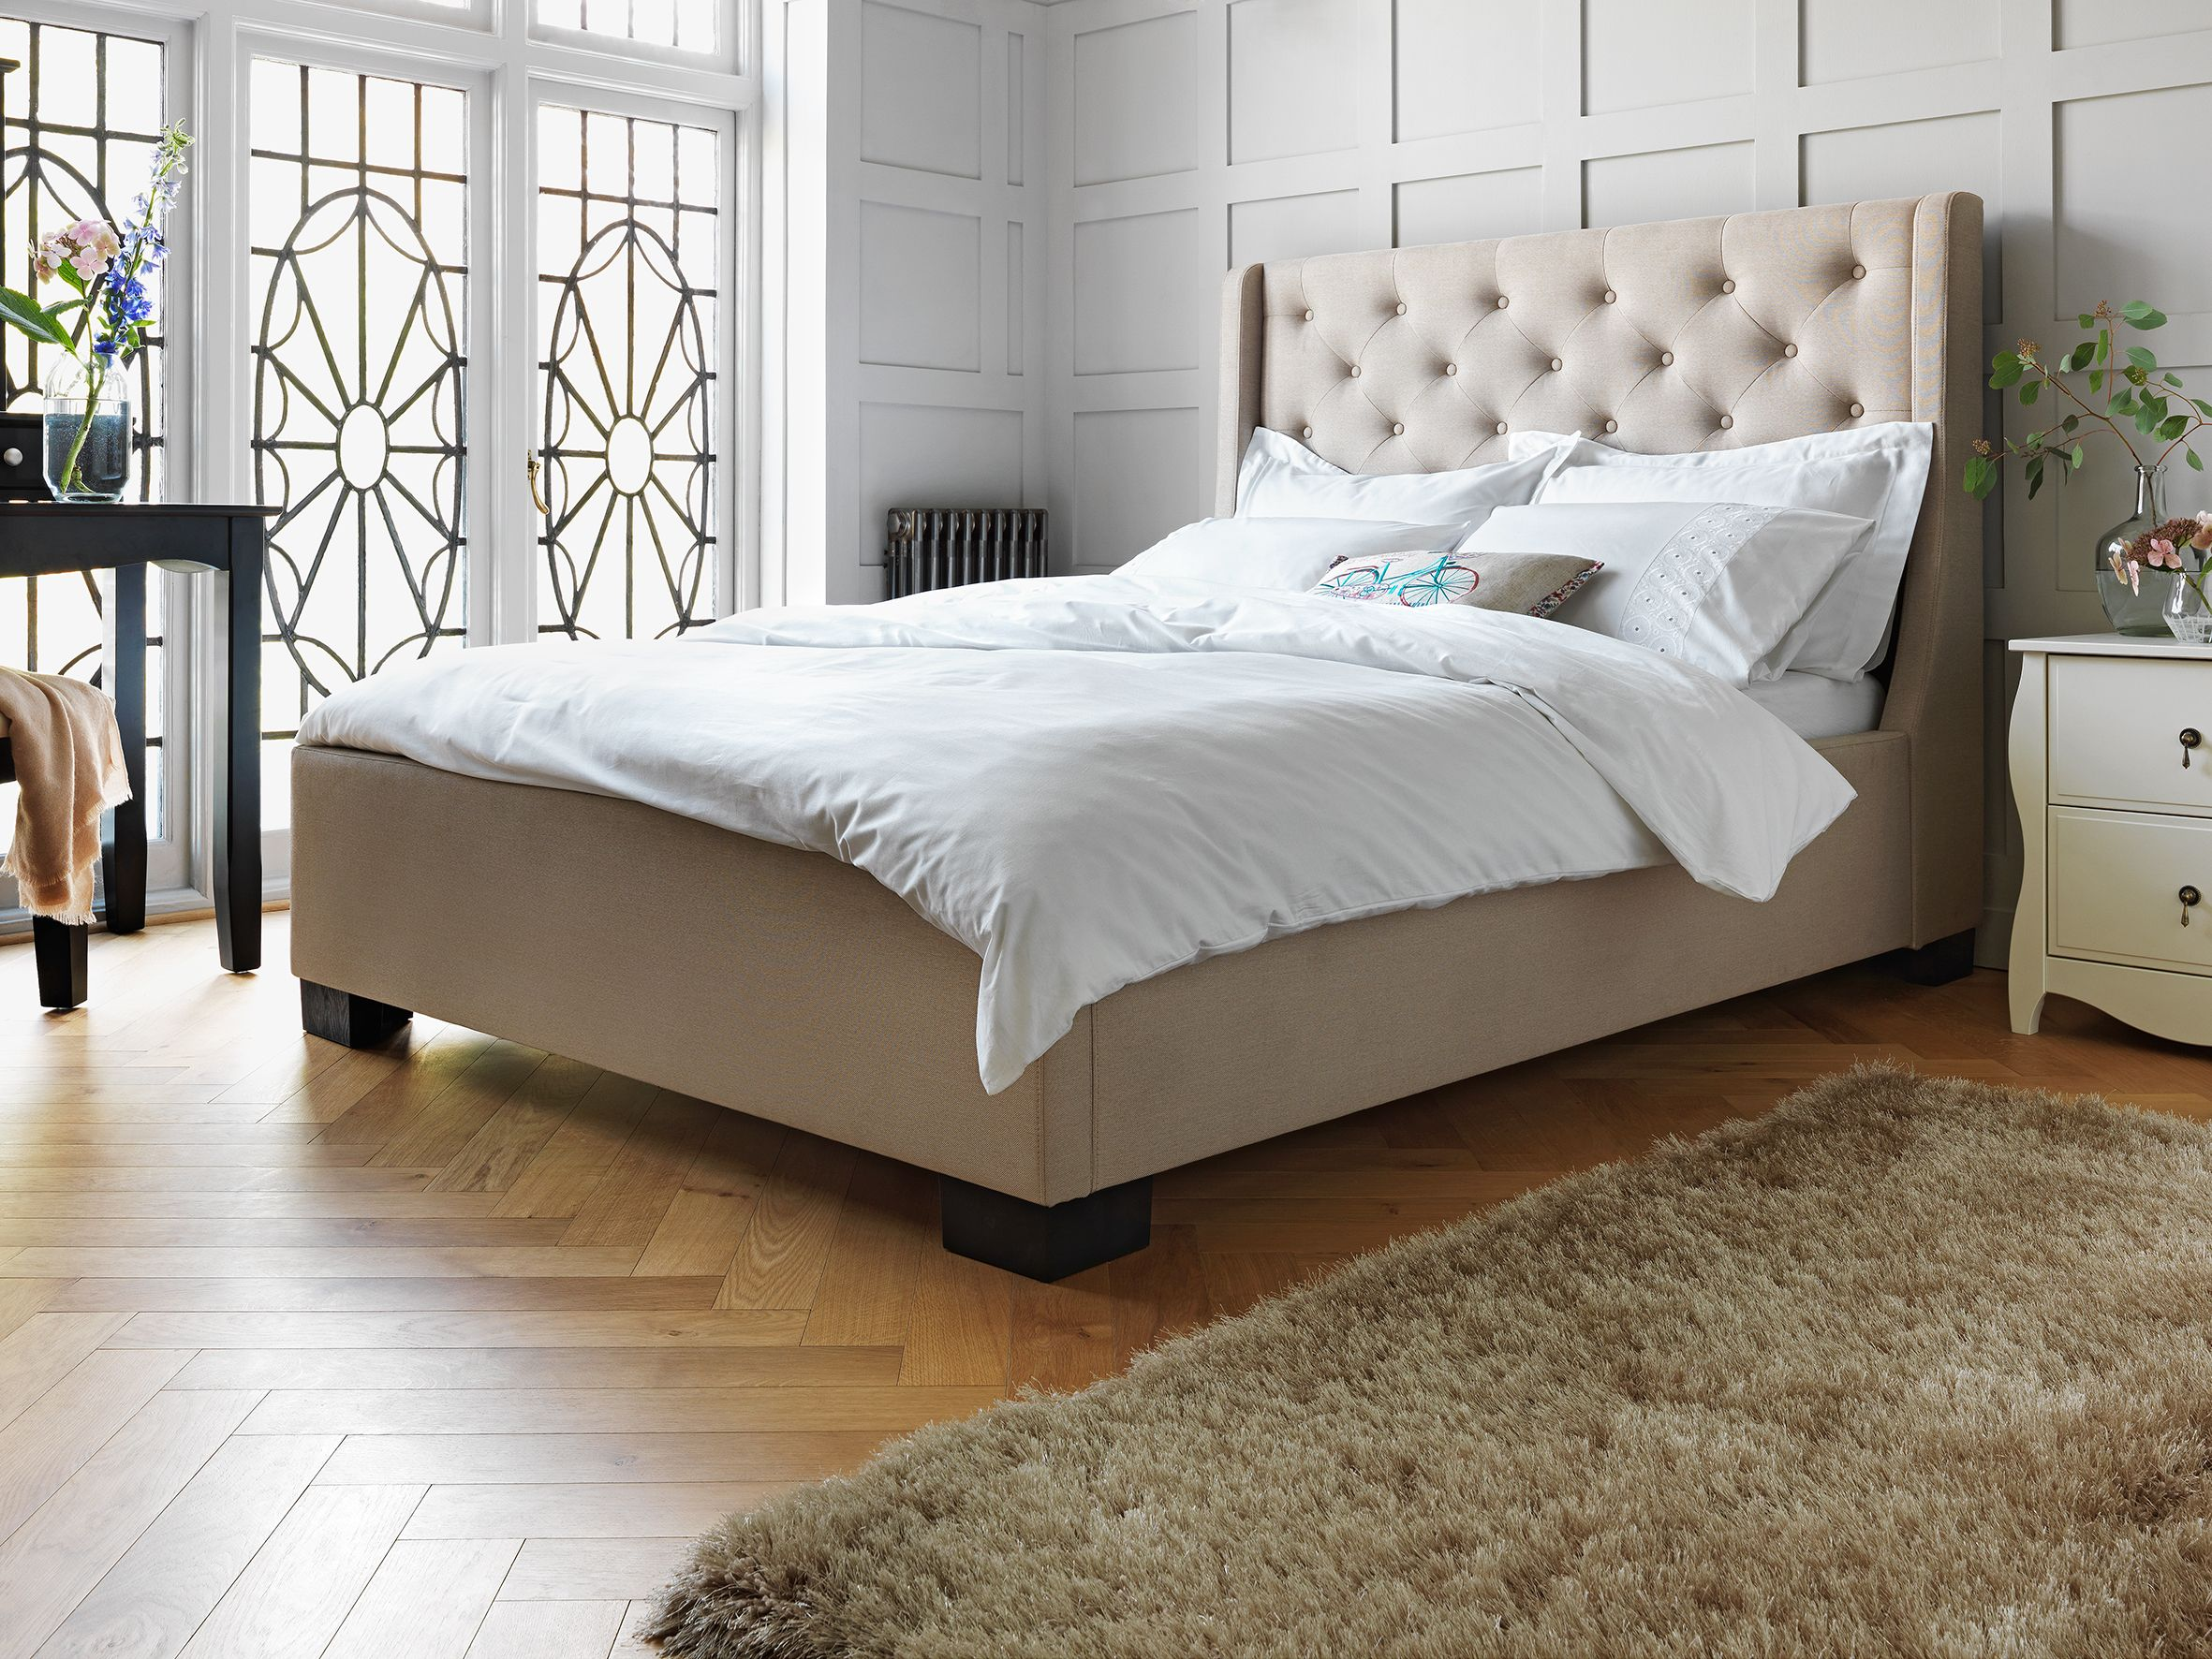 Where to buy bed frames uk